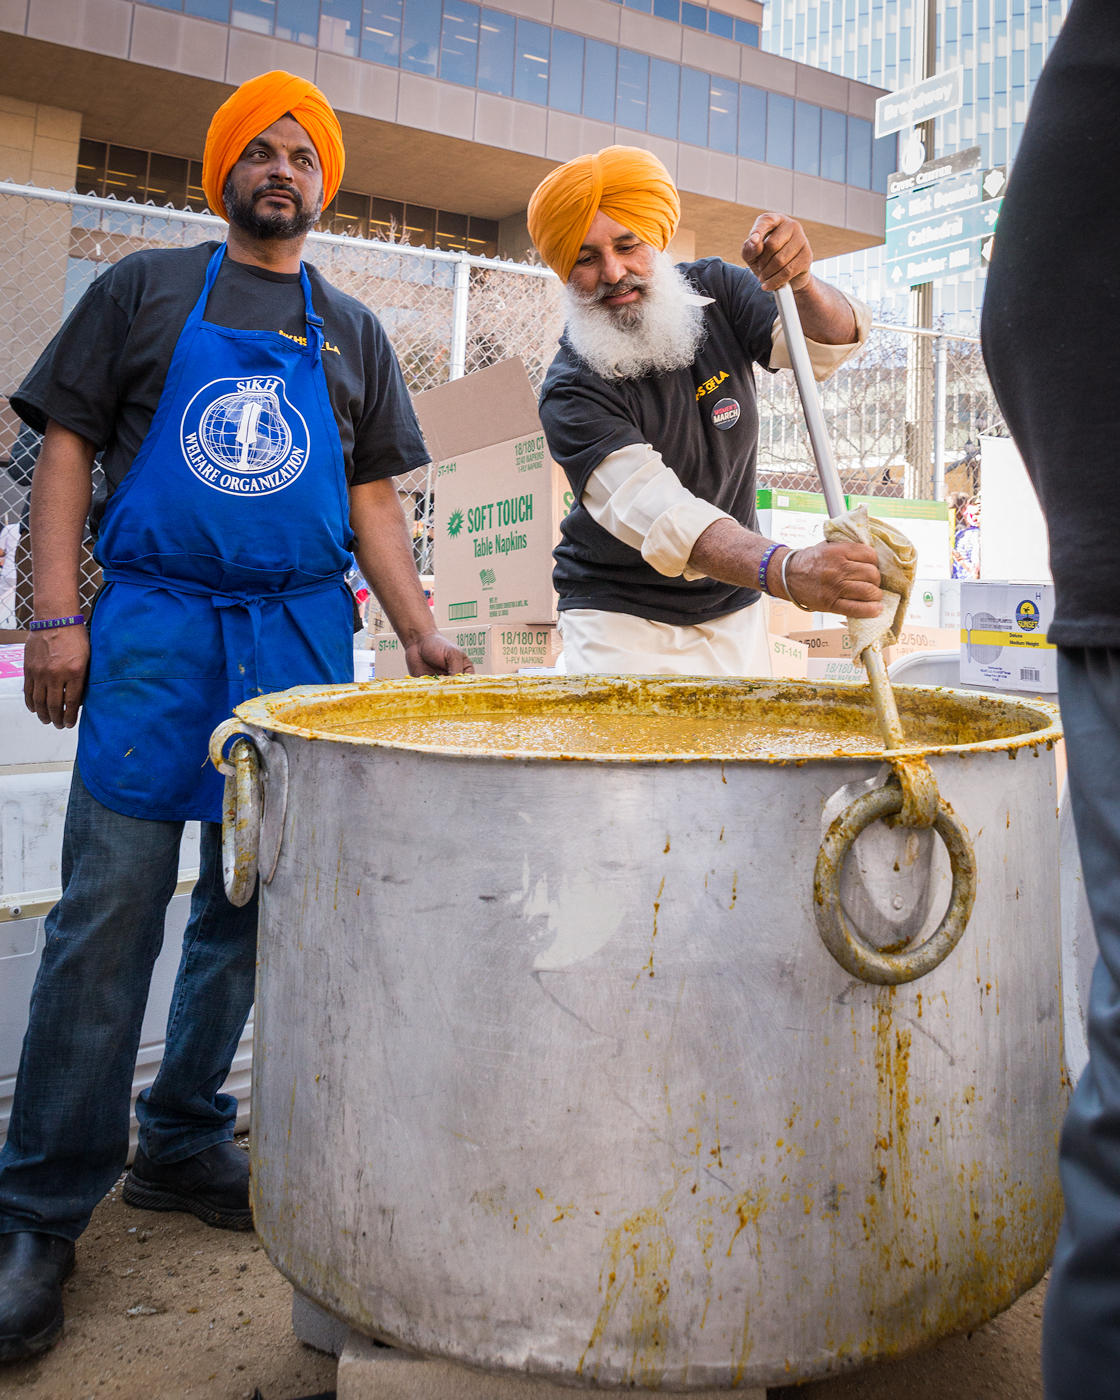 (2018) The Sikhs of LA return for the second Women's March to give out free chana masala, or savory chickpeas, and white rice. The demand for food is great so the curry-like dish is scooped from the cauldron by the bucket - literally.